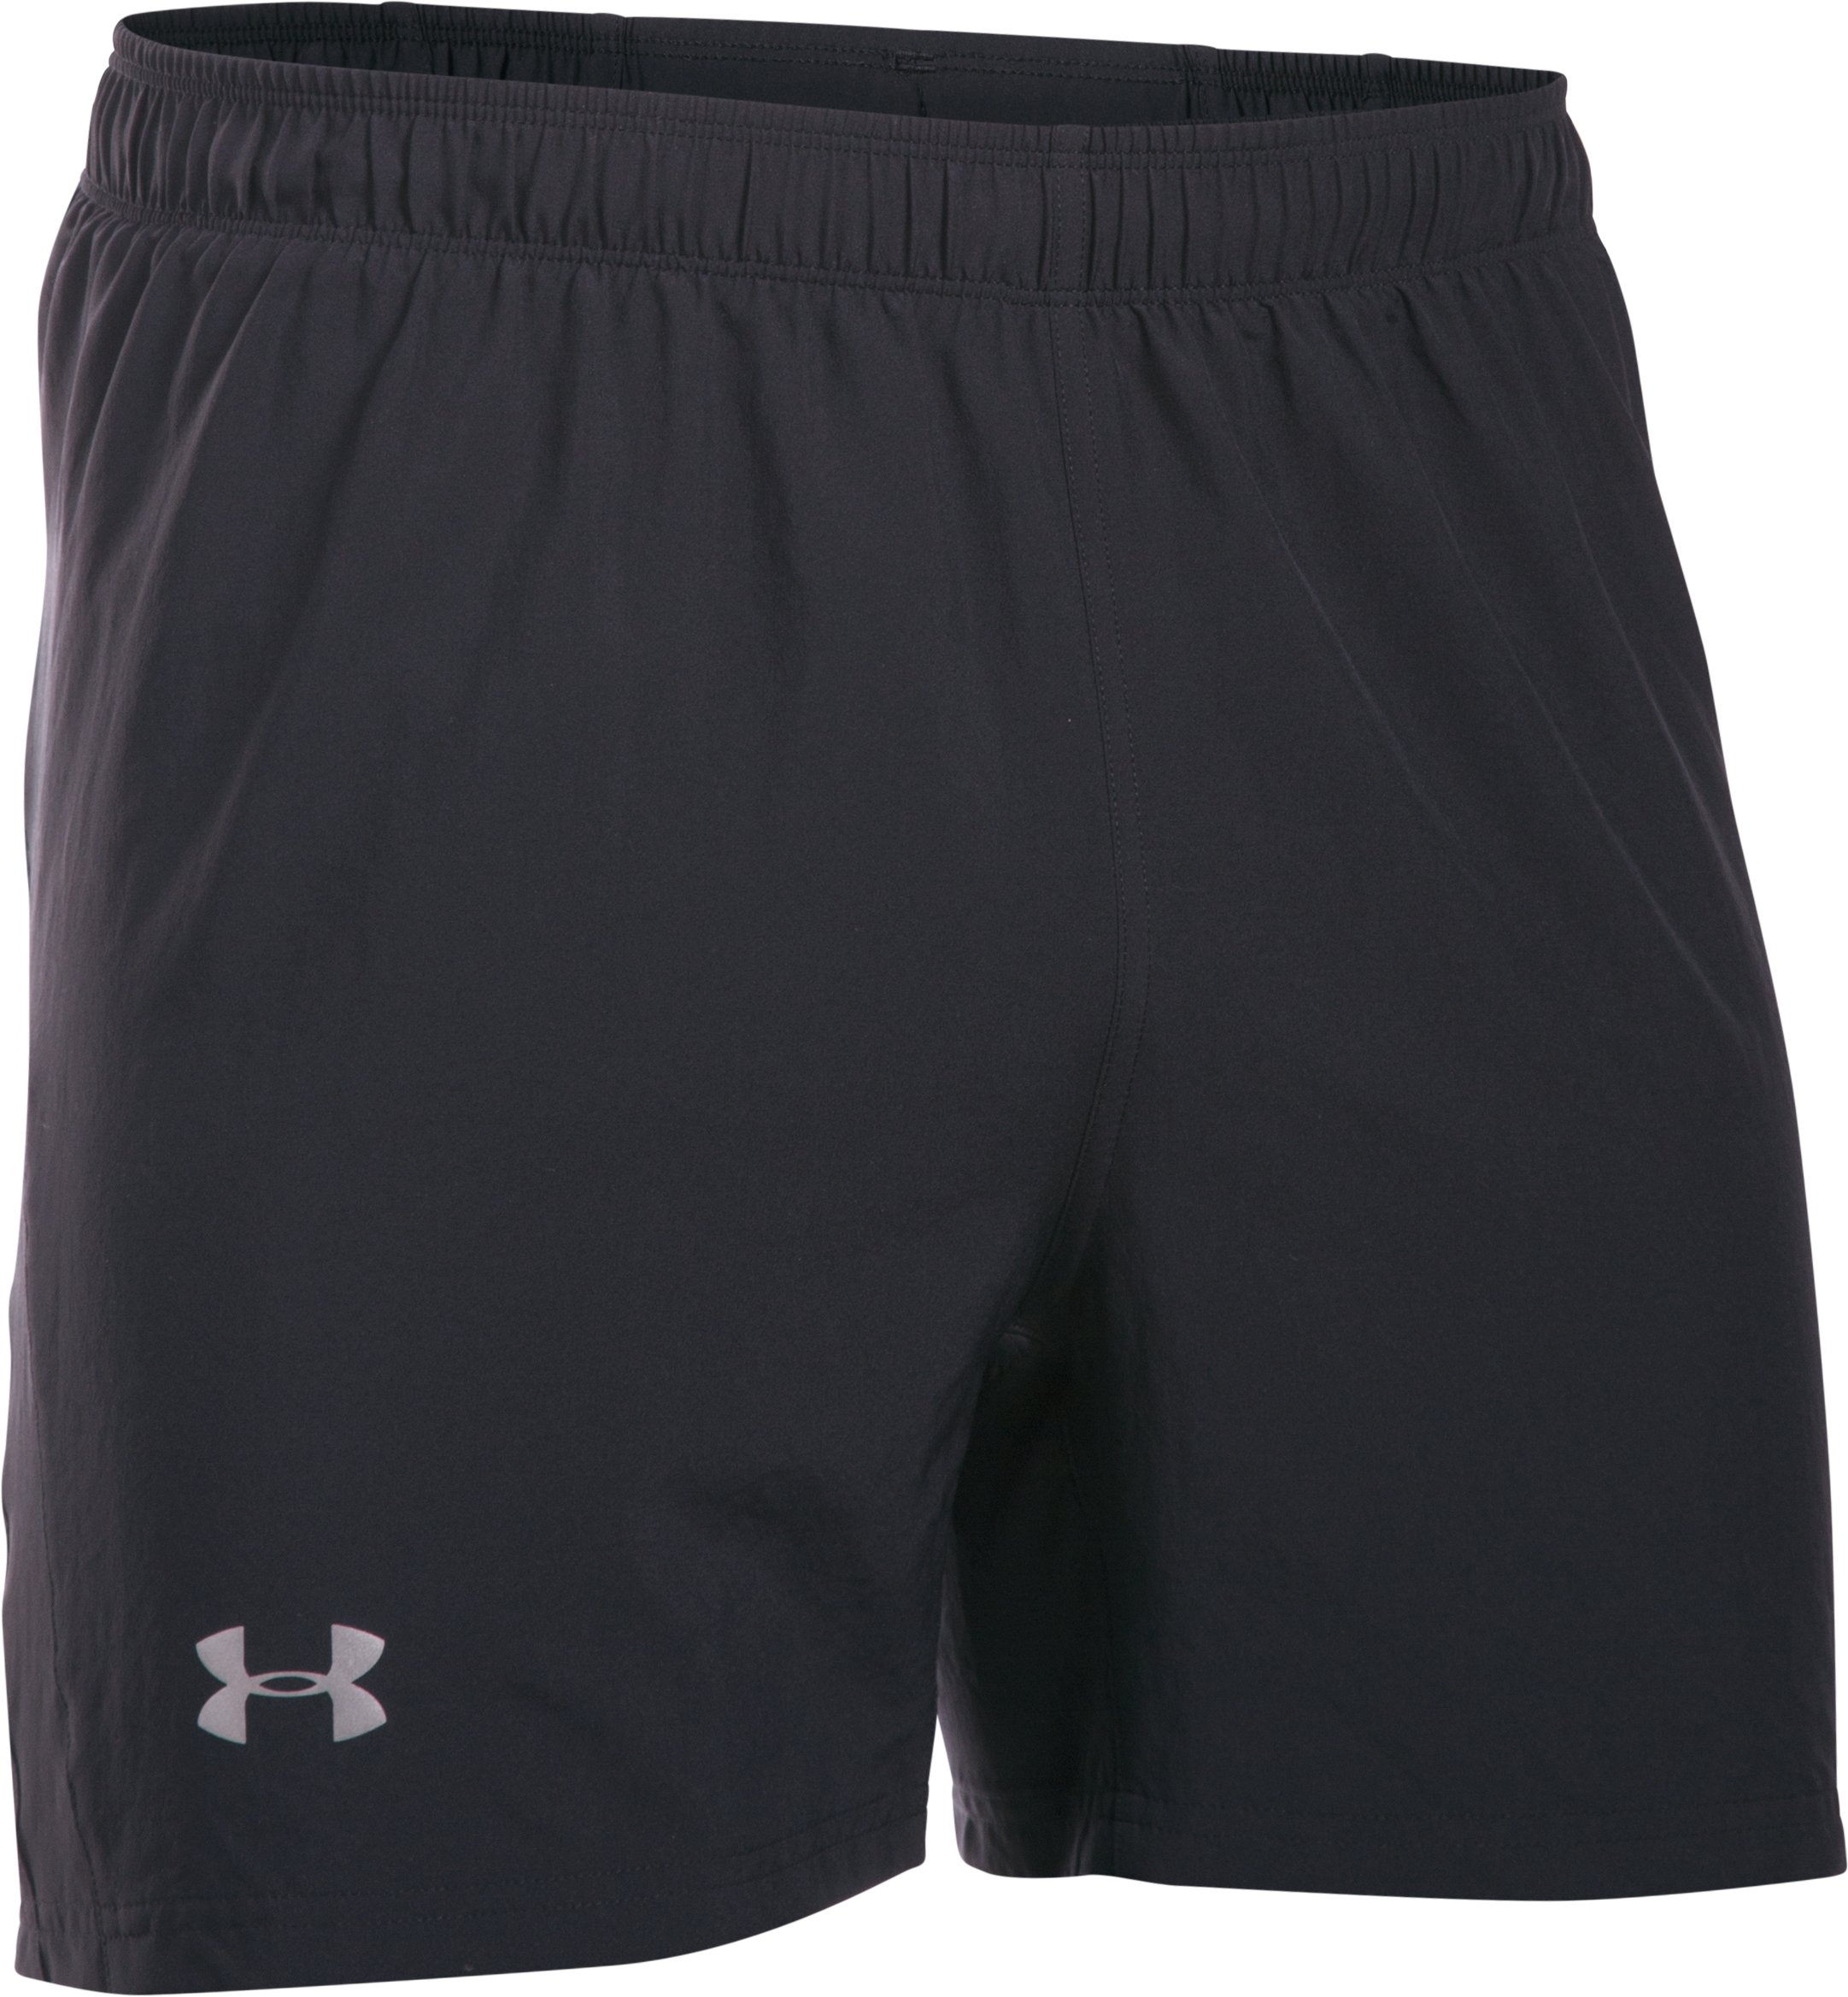 "Men's UA Launch 5"" Run Shorts, Black"